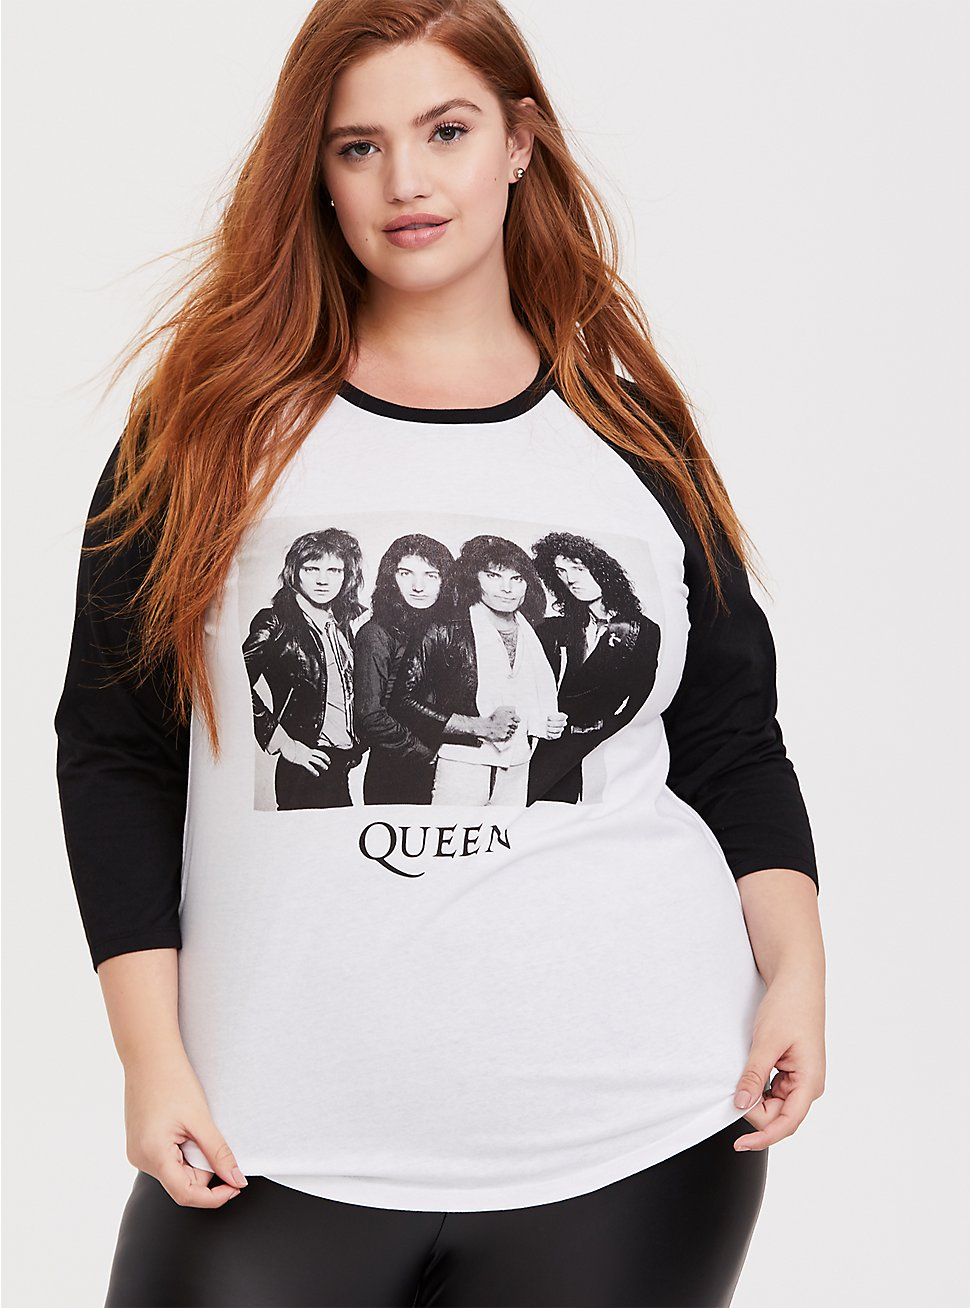 Queen White & Black Raglan Tee, CLOUD DANCER, hi-res